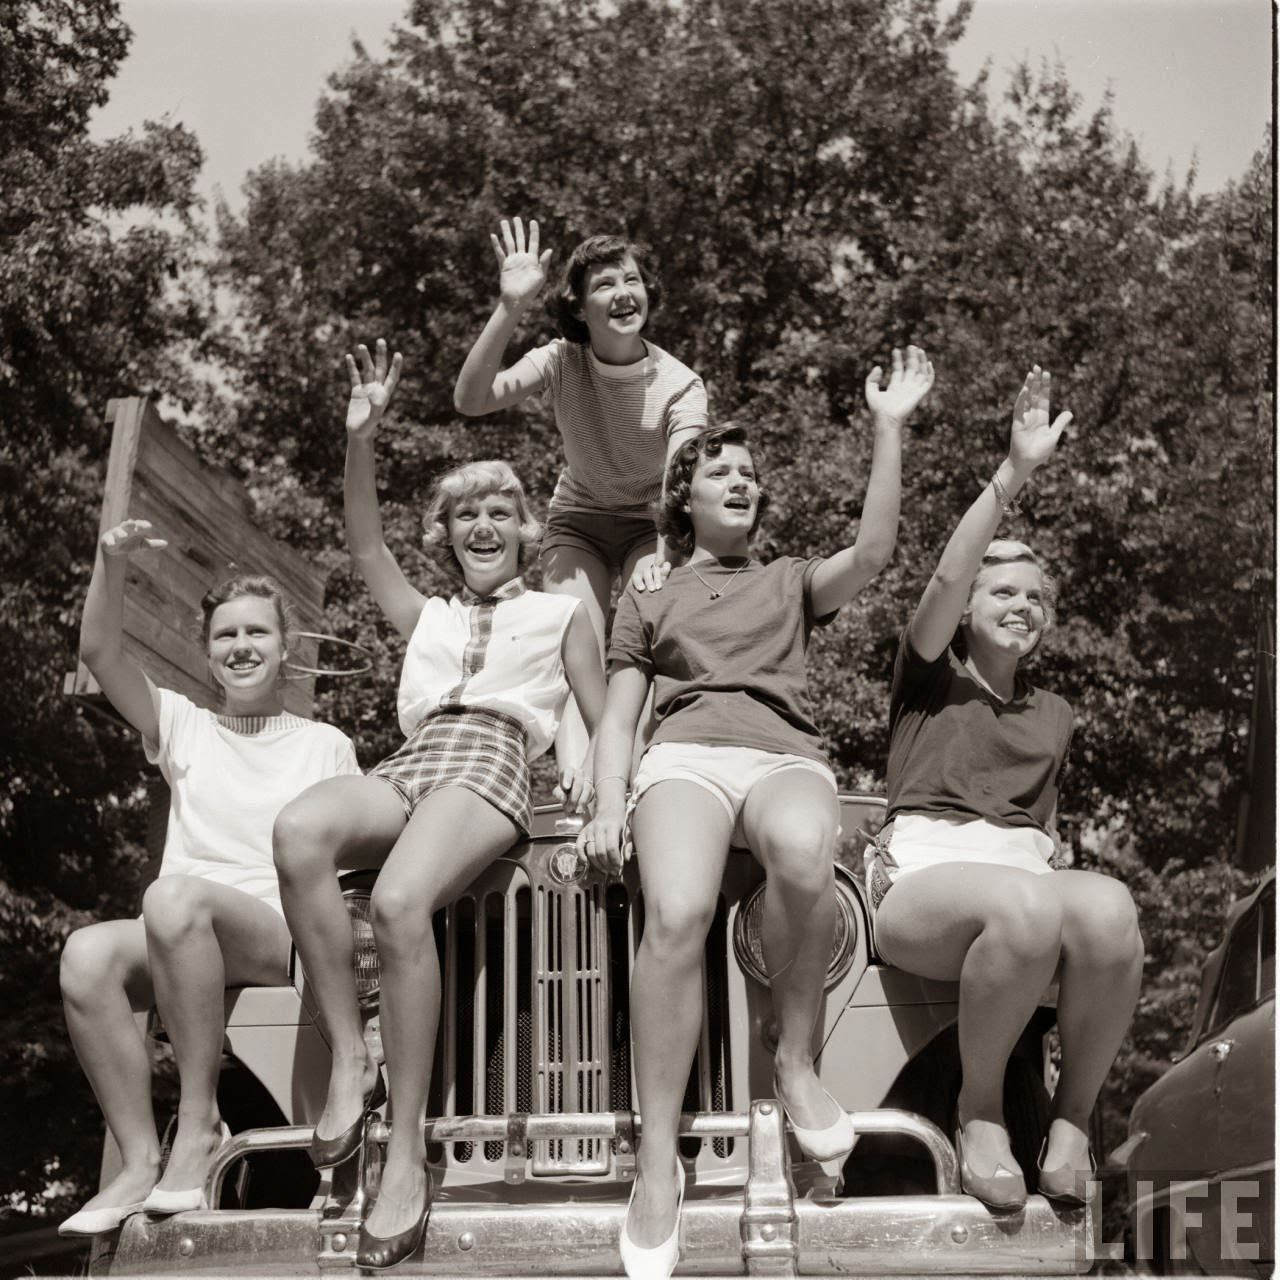 Short Shorts in the 1950's (23)